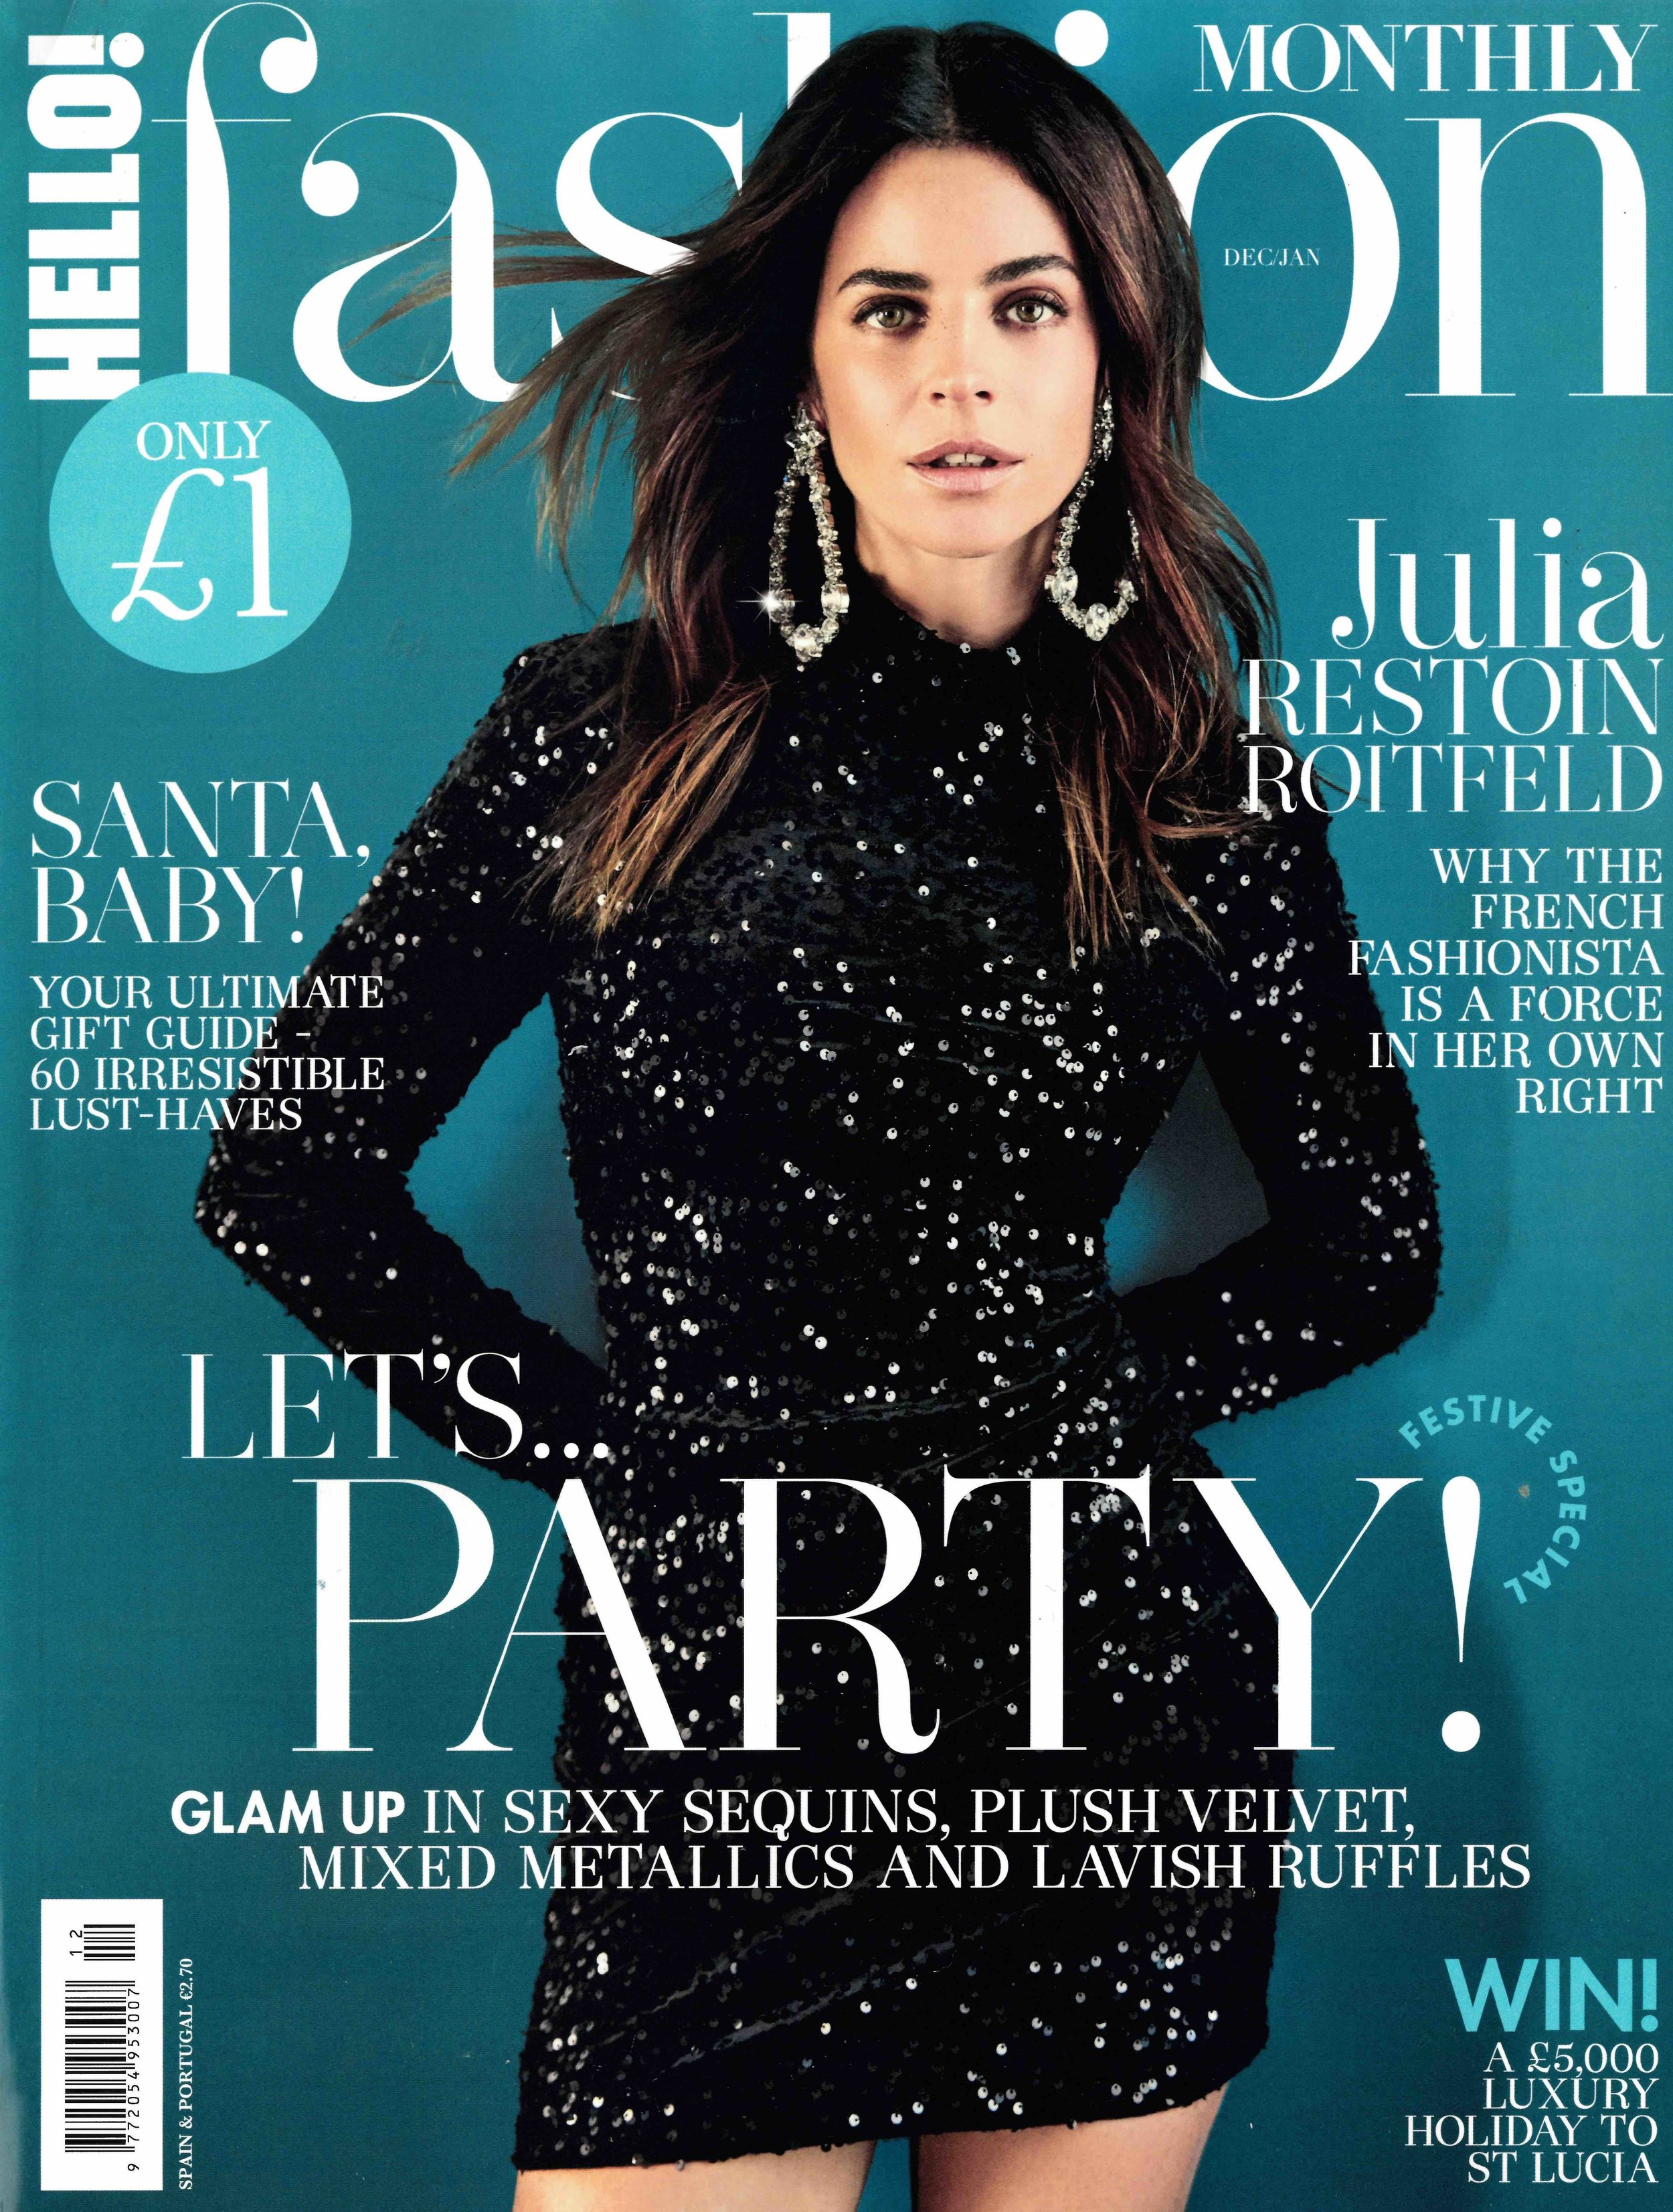 December Issue, Hello! Fashion Monthly Cover.jpg